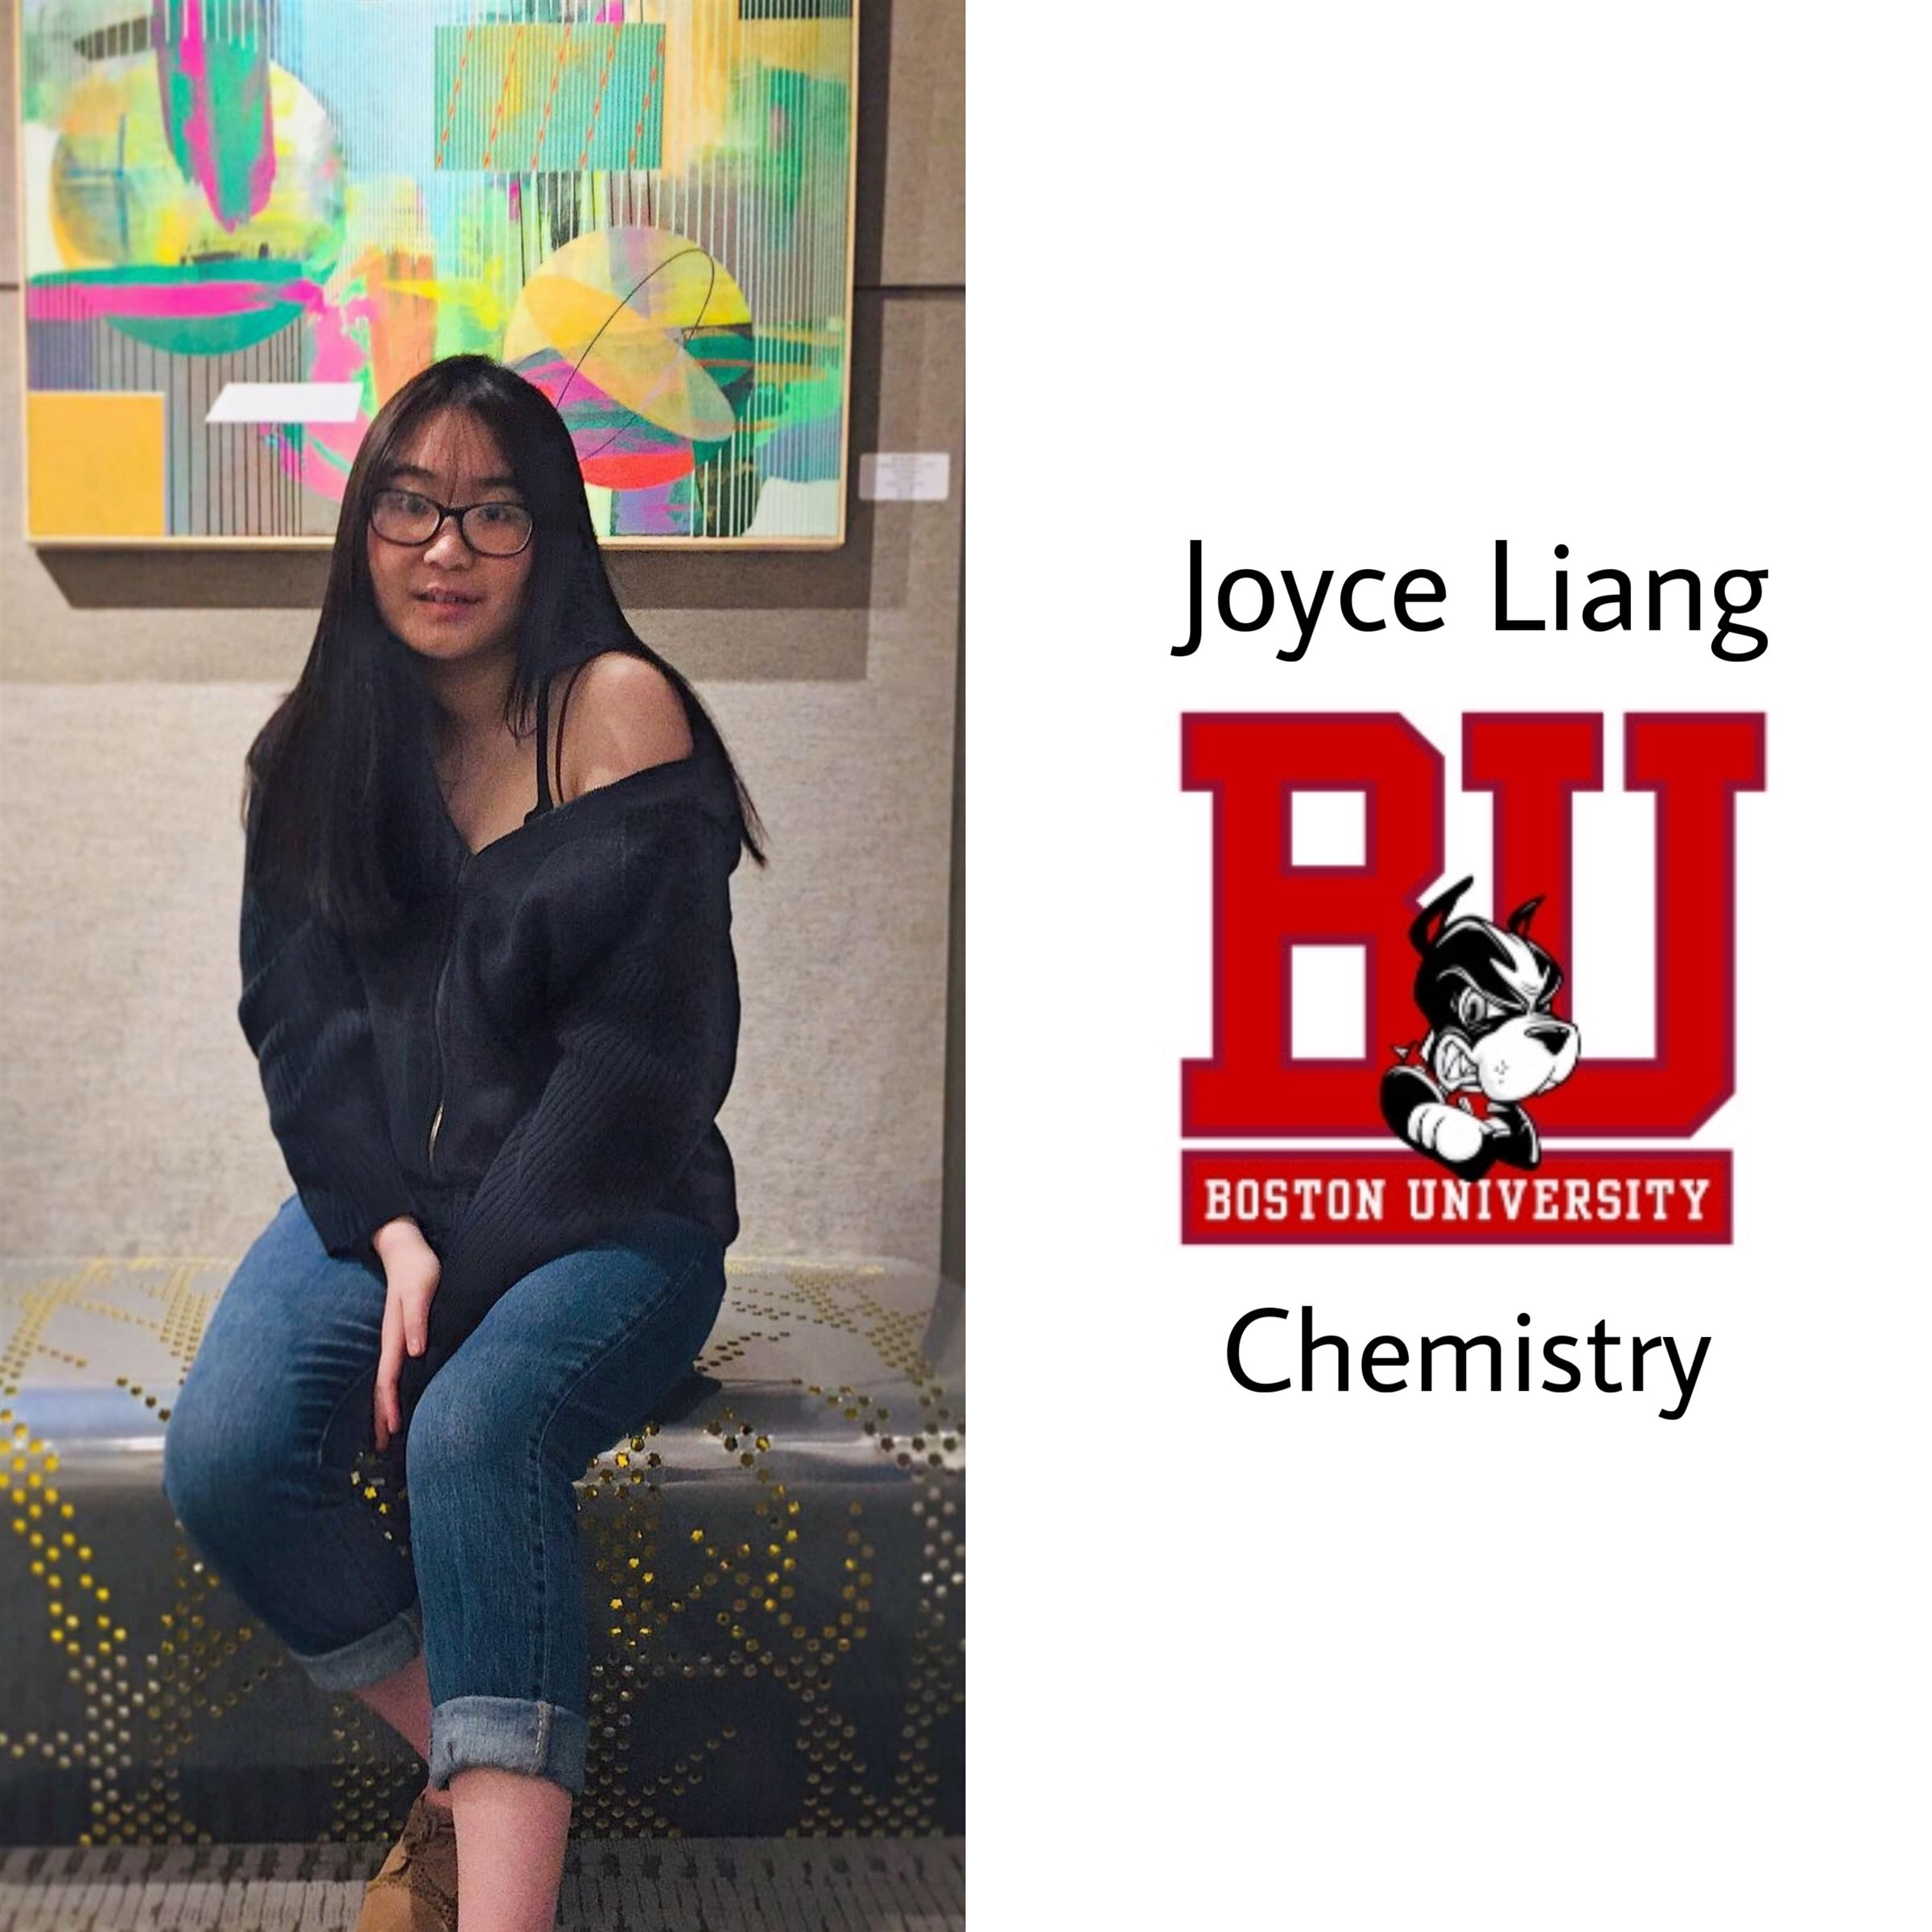 Congrats Joyce!!! Another Boston Terrier!! She will be at Boston University next year studying chemistry! :)